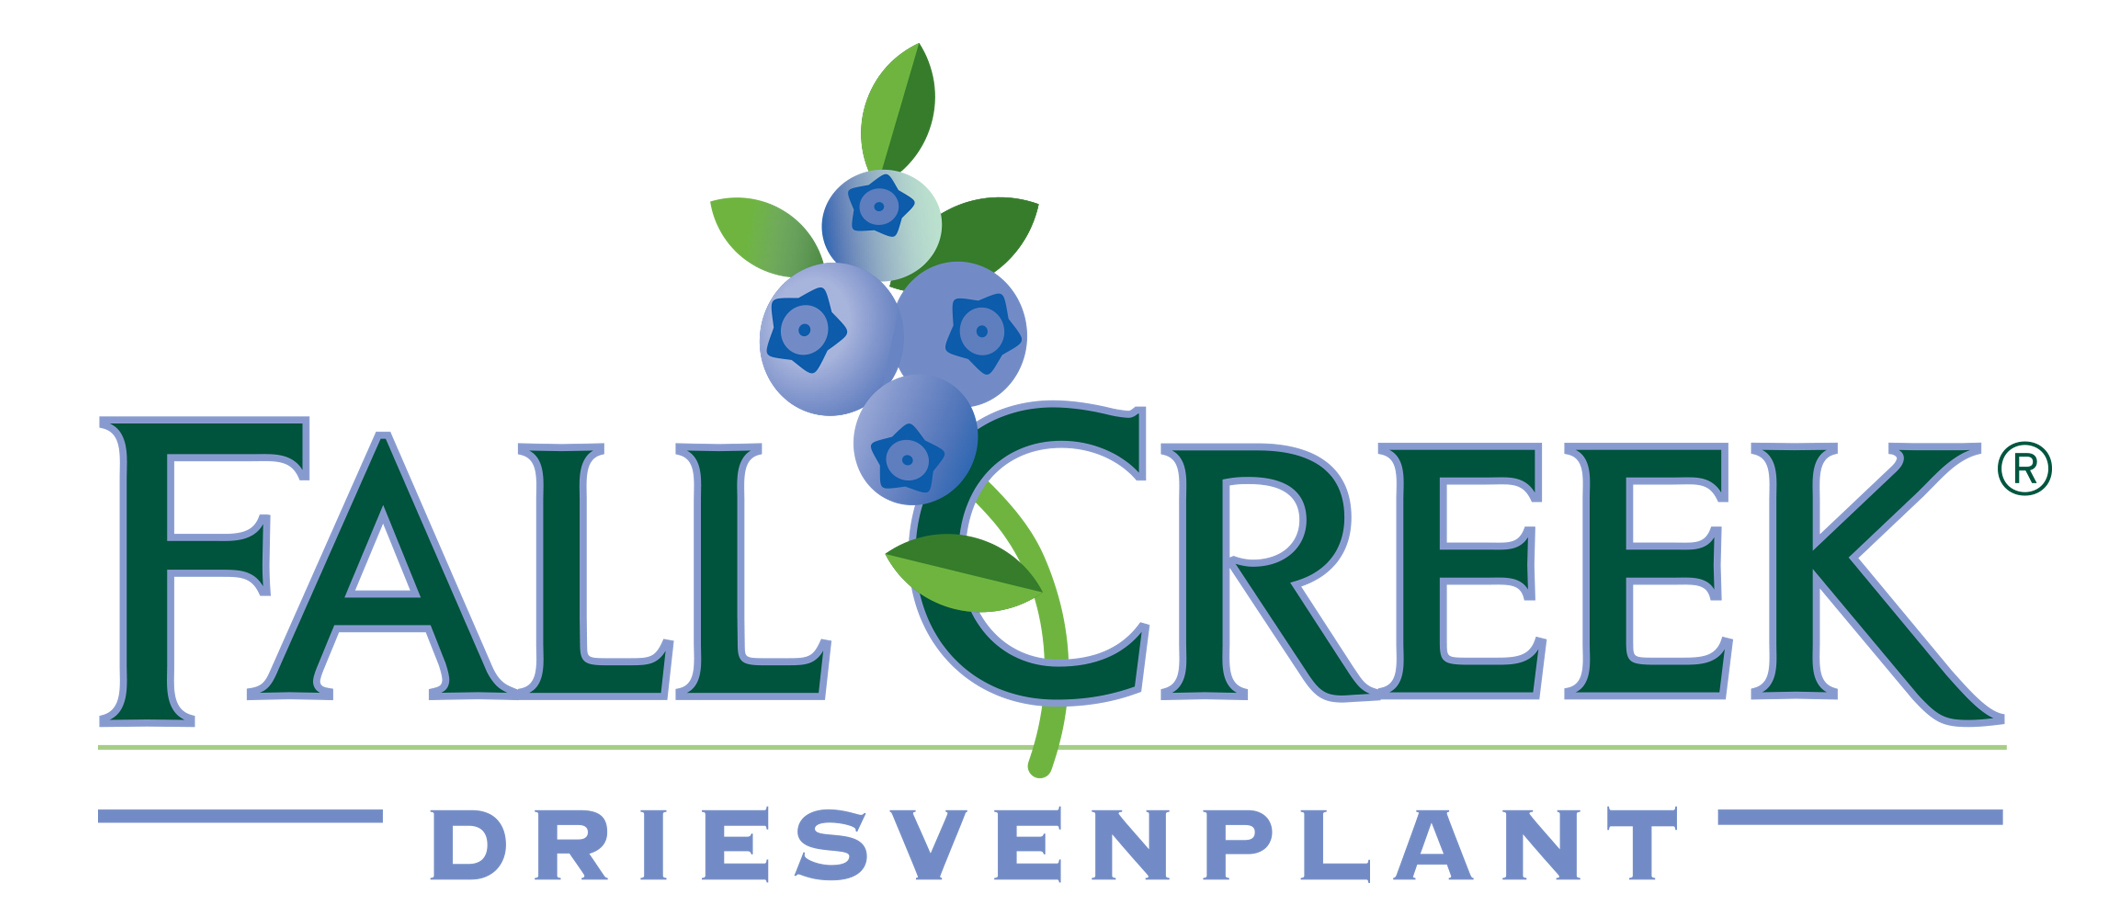 The Driessen Family Of Driesvenplant Nursery In Netherlands And Brazeltons Fall Creek Have Been Friends Since 1980 S